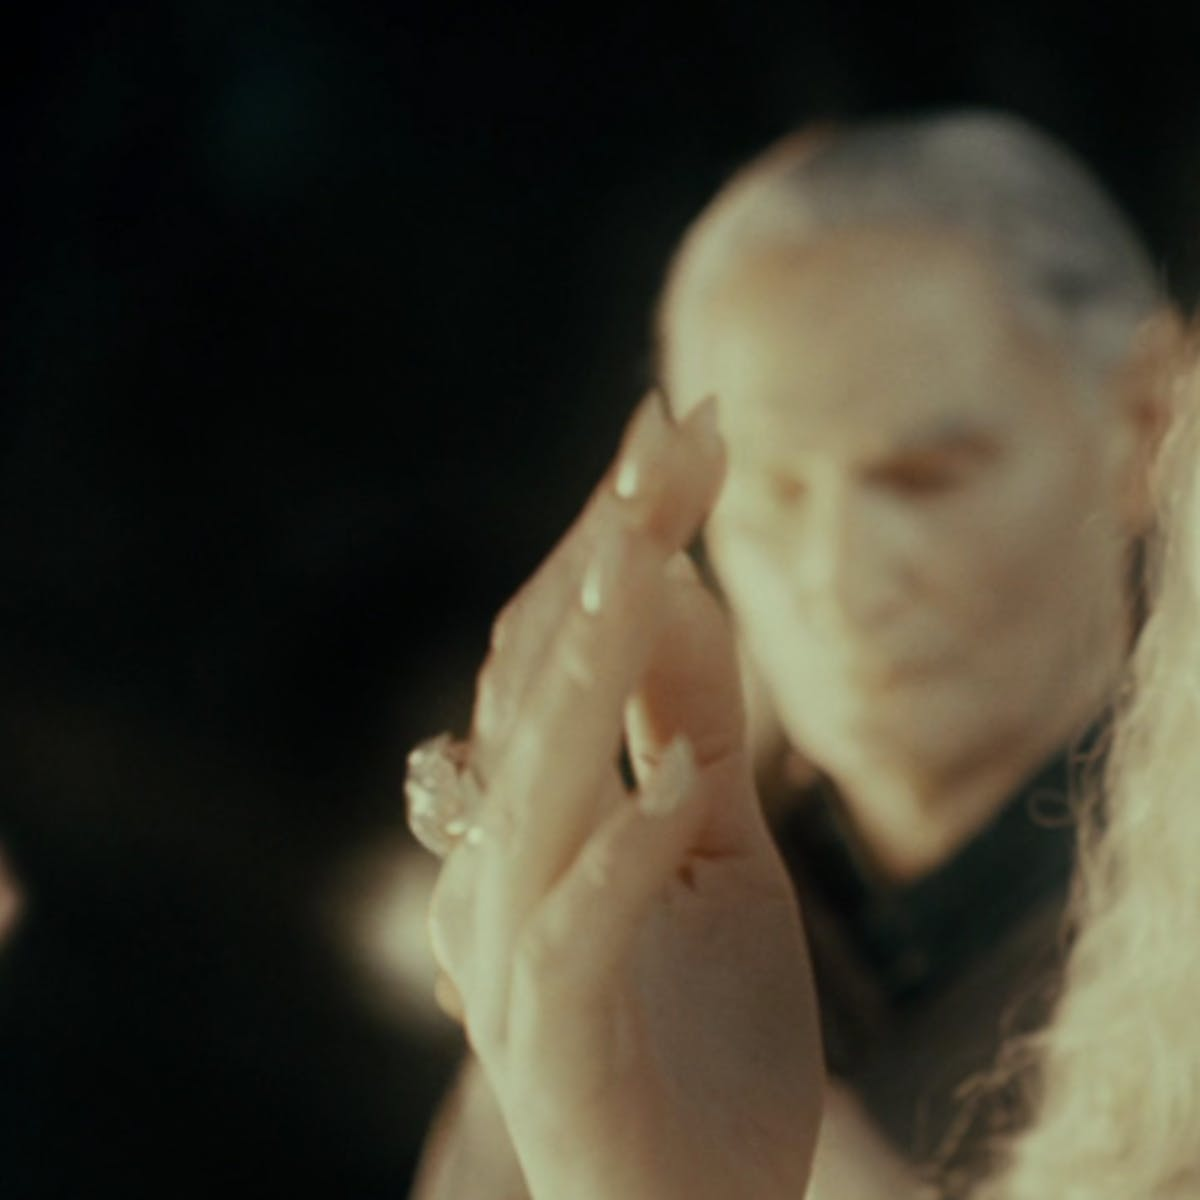 9 Ways 'Shadow of War' Changes 'Lord of the Rings' Canon